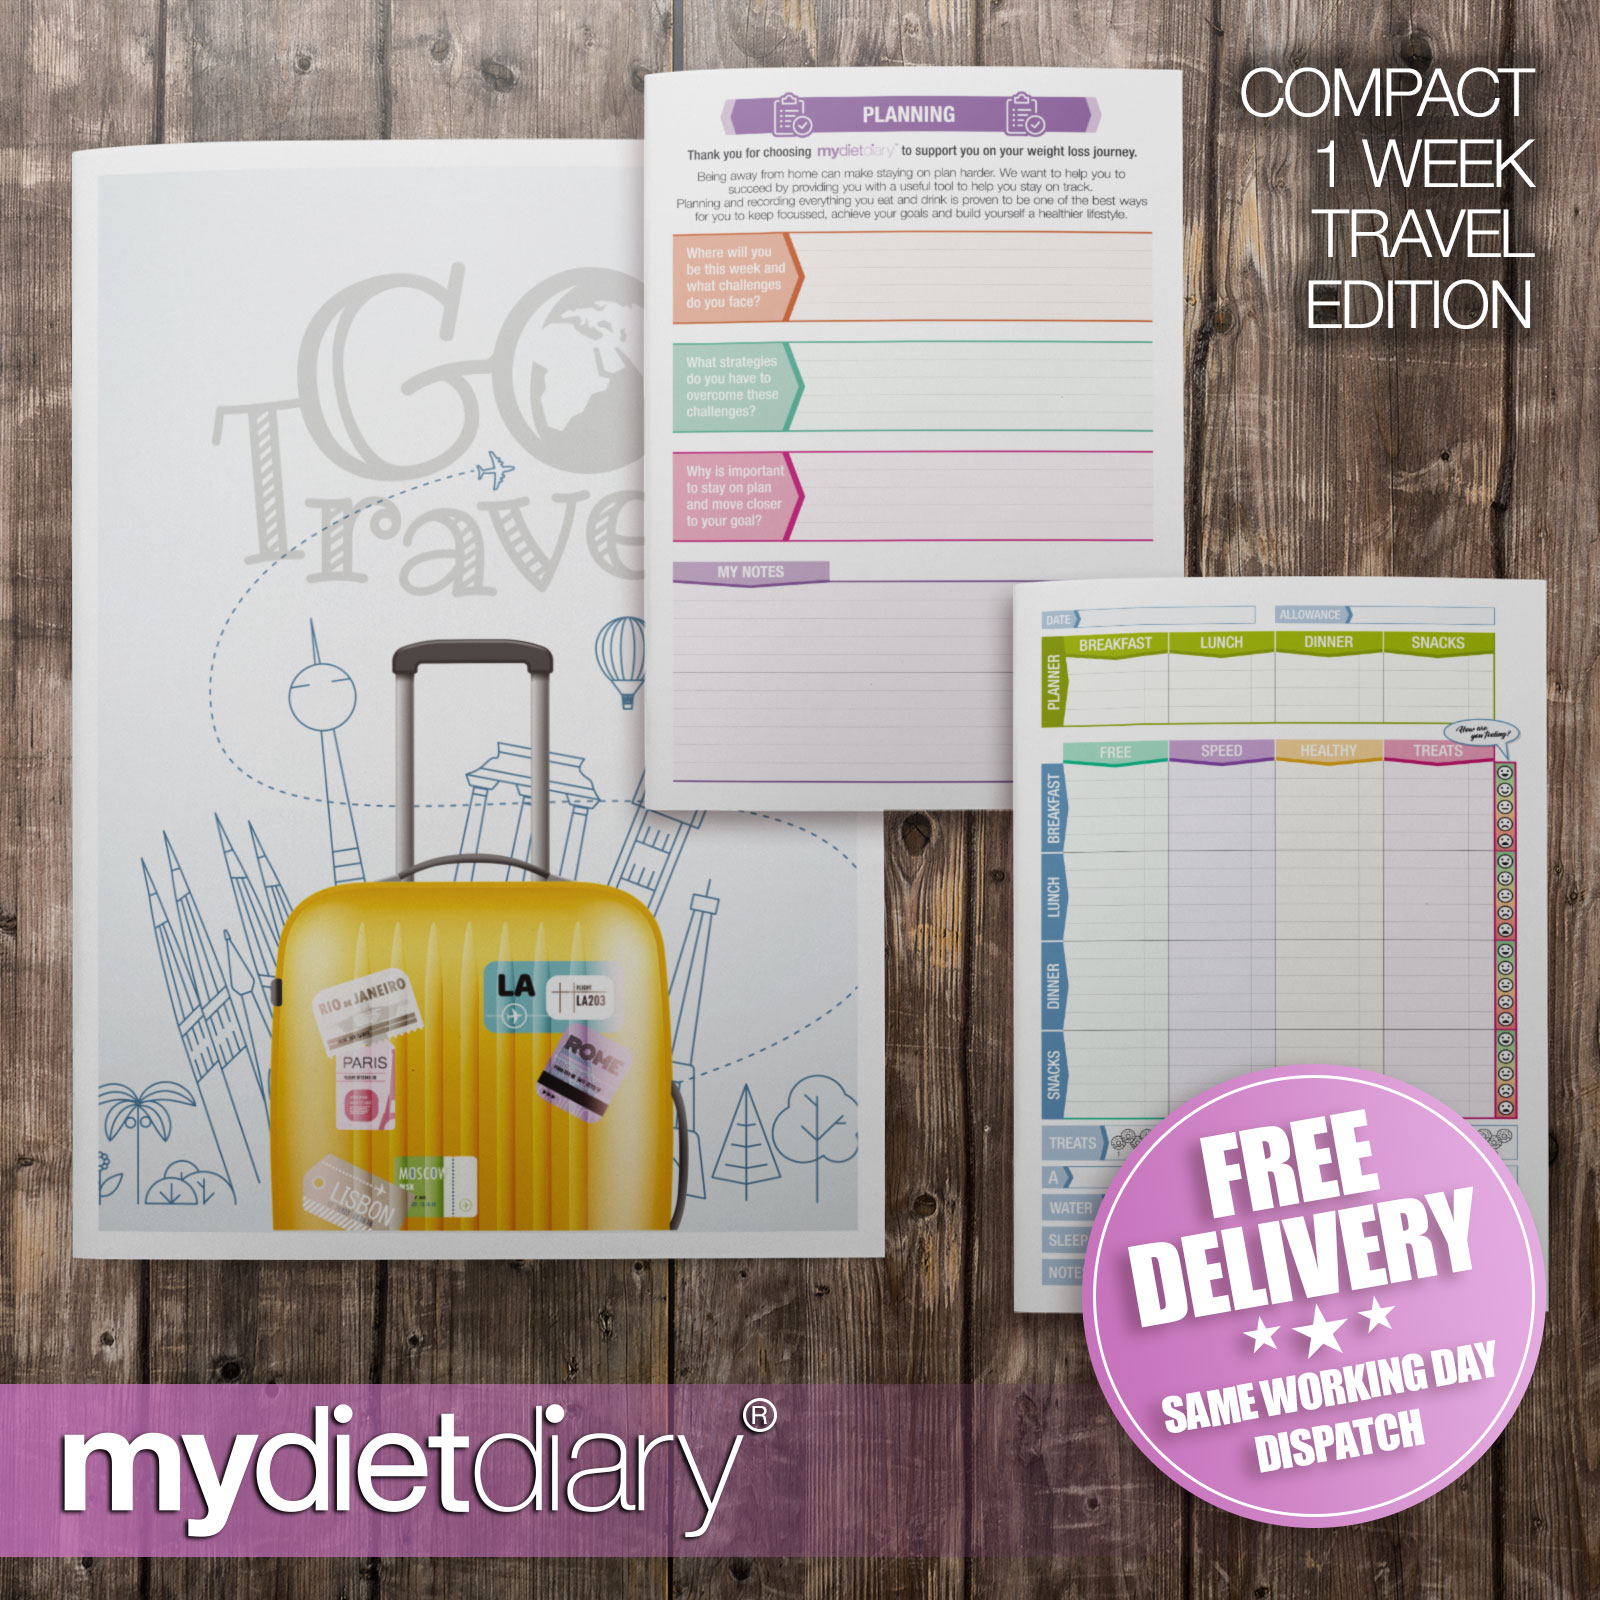 FOOD-DIET-DIARY-Feel-Like-Quitting-G013S-7wk-tracker-notebook-journal-diary